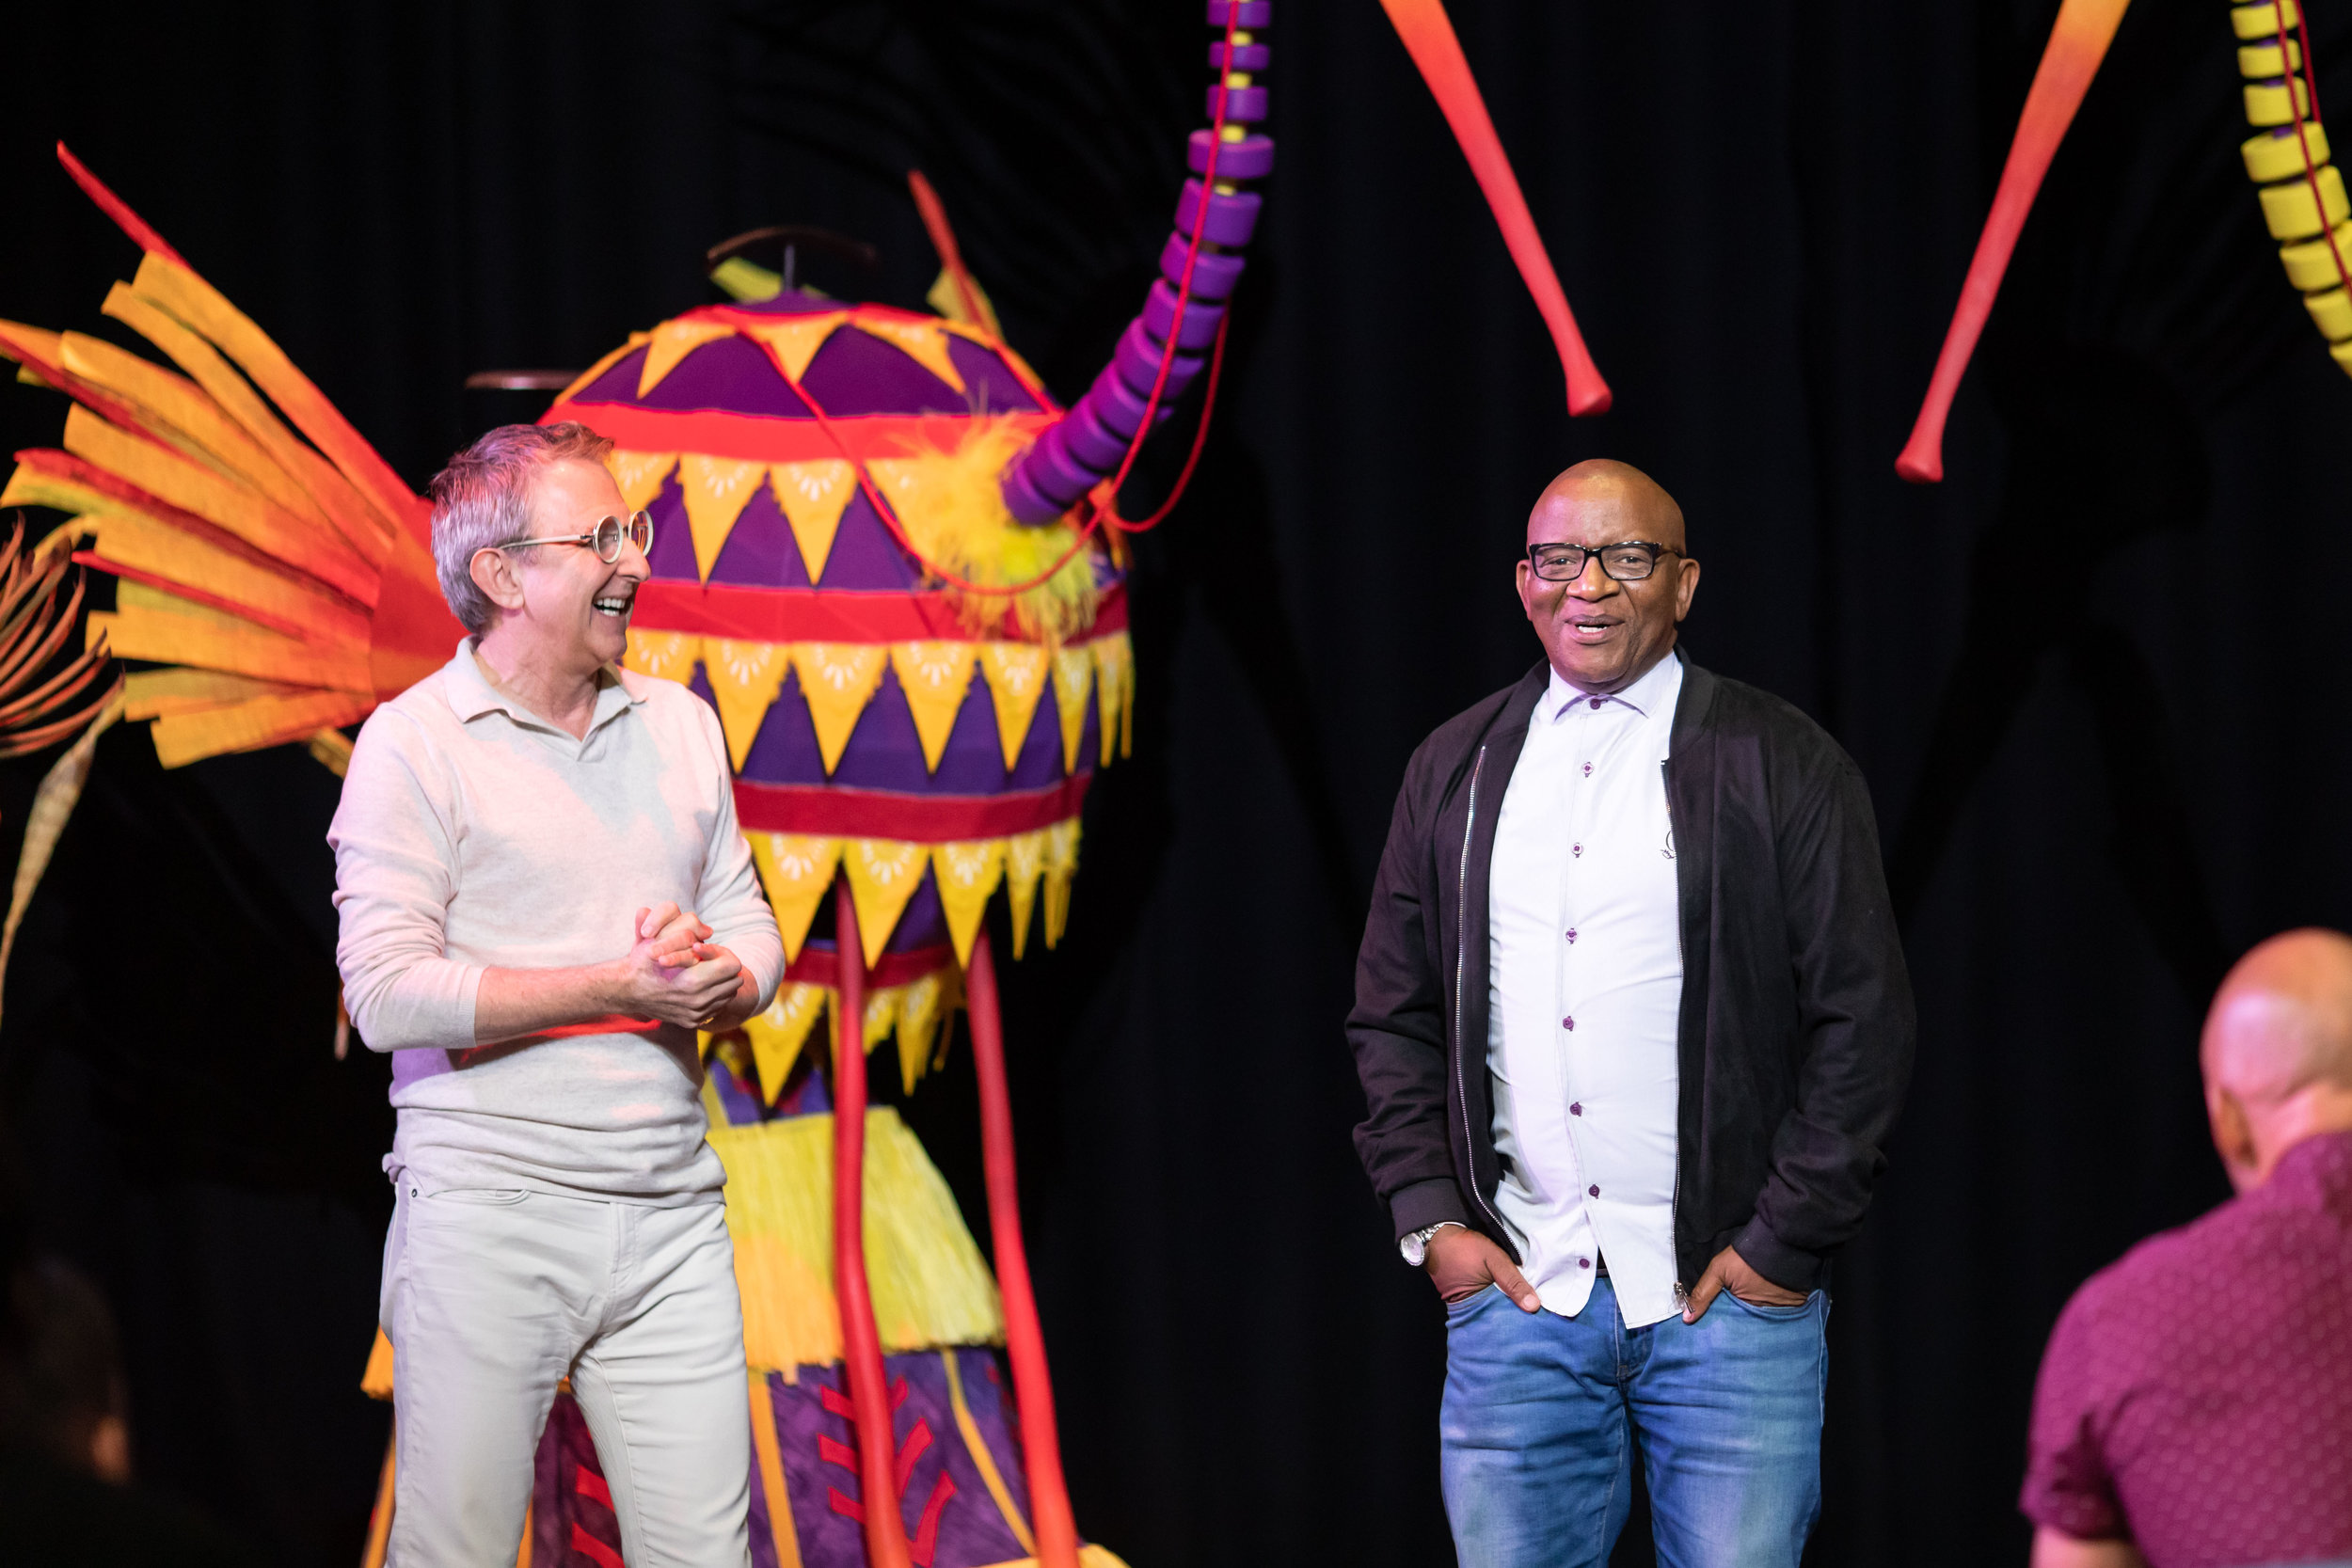 Thomas Schumacher and Lebo M at the first day of rehearsals for Disney's The Lion King UK tour. The Lion King comes to Bristol Hippodrome from September 7 until November 23, 2019. Credit Helen Maybanks ®Disney